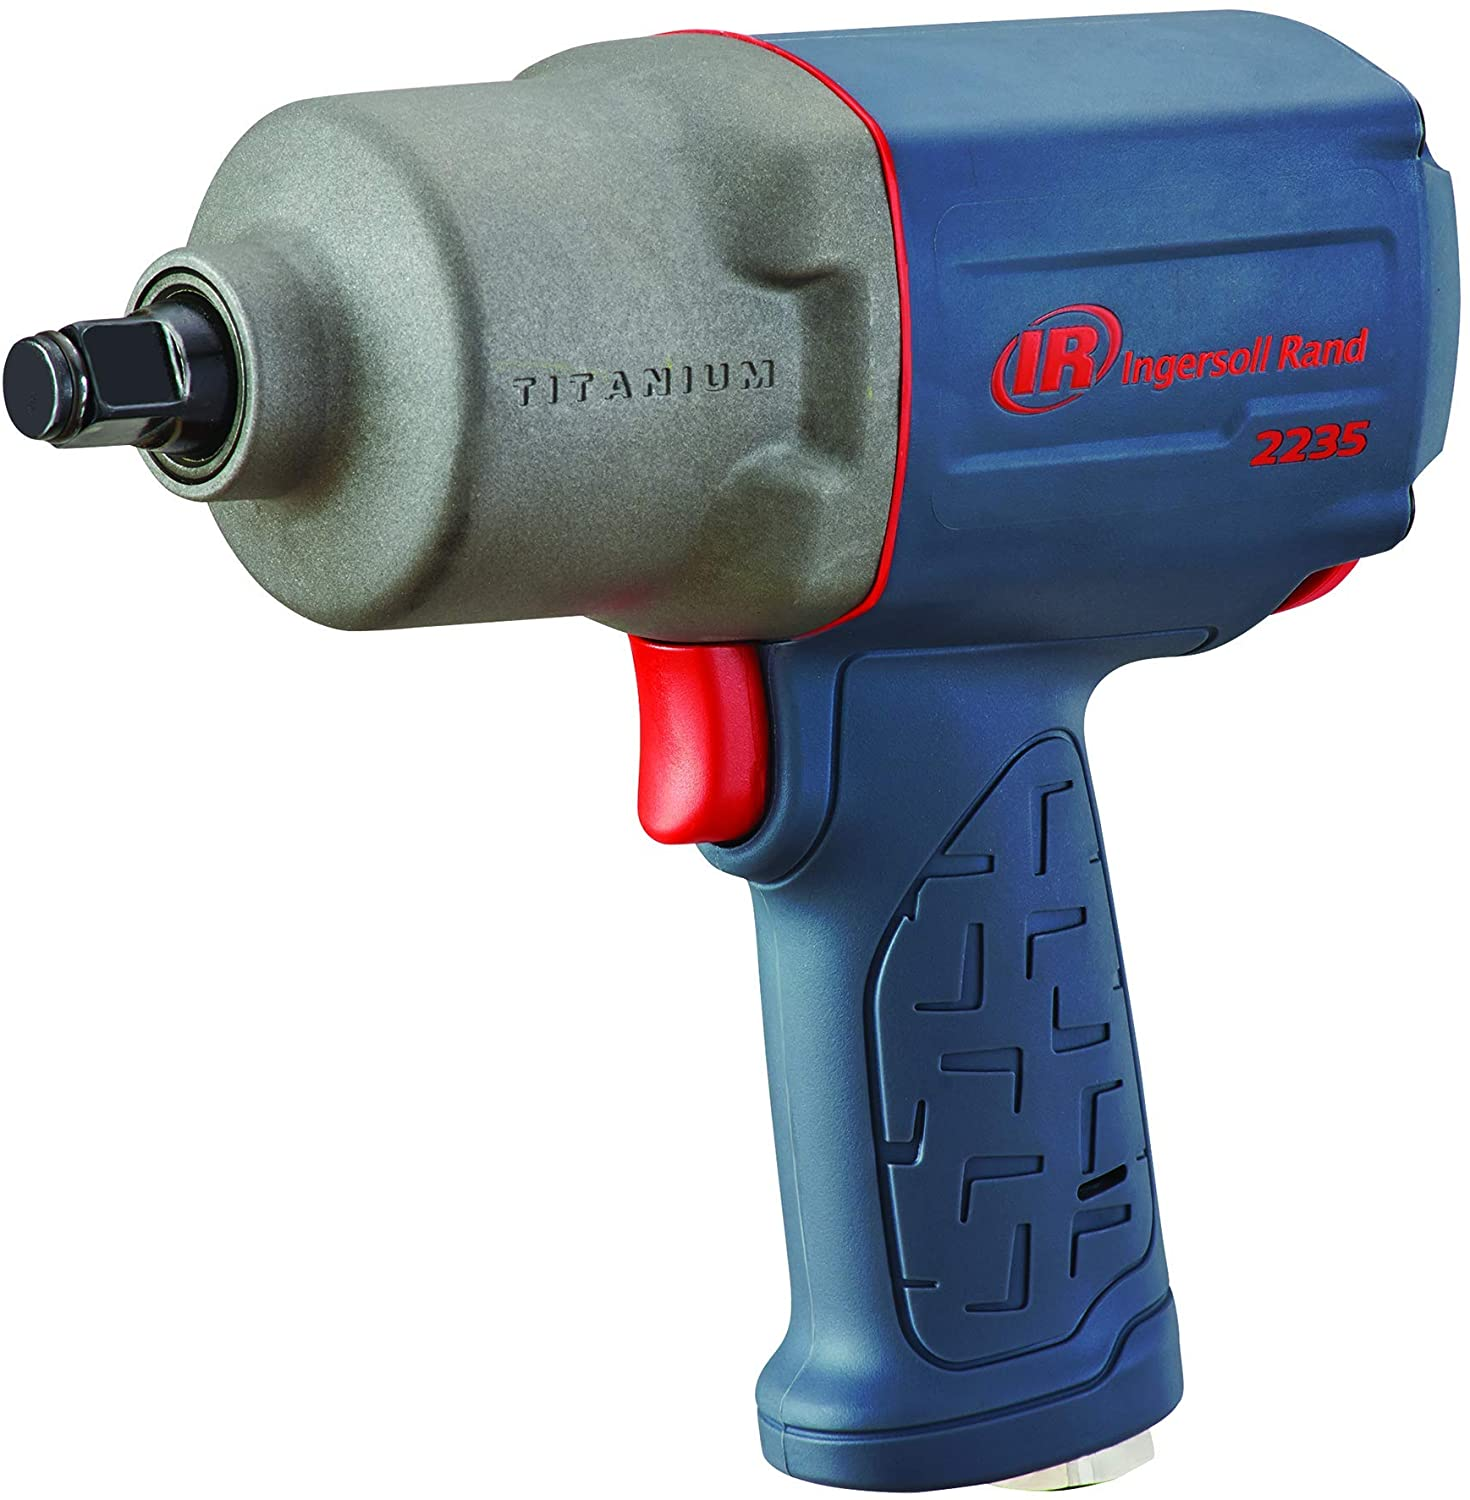 """ngersoll Rand 2235TiMAX 1/2"""" Drive Air Impact Wrench"""